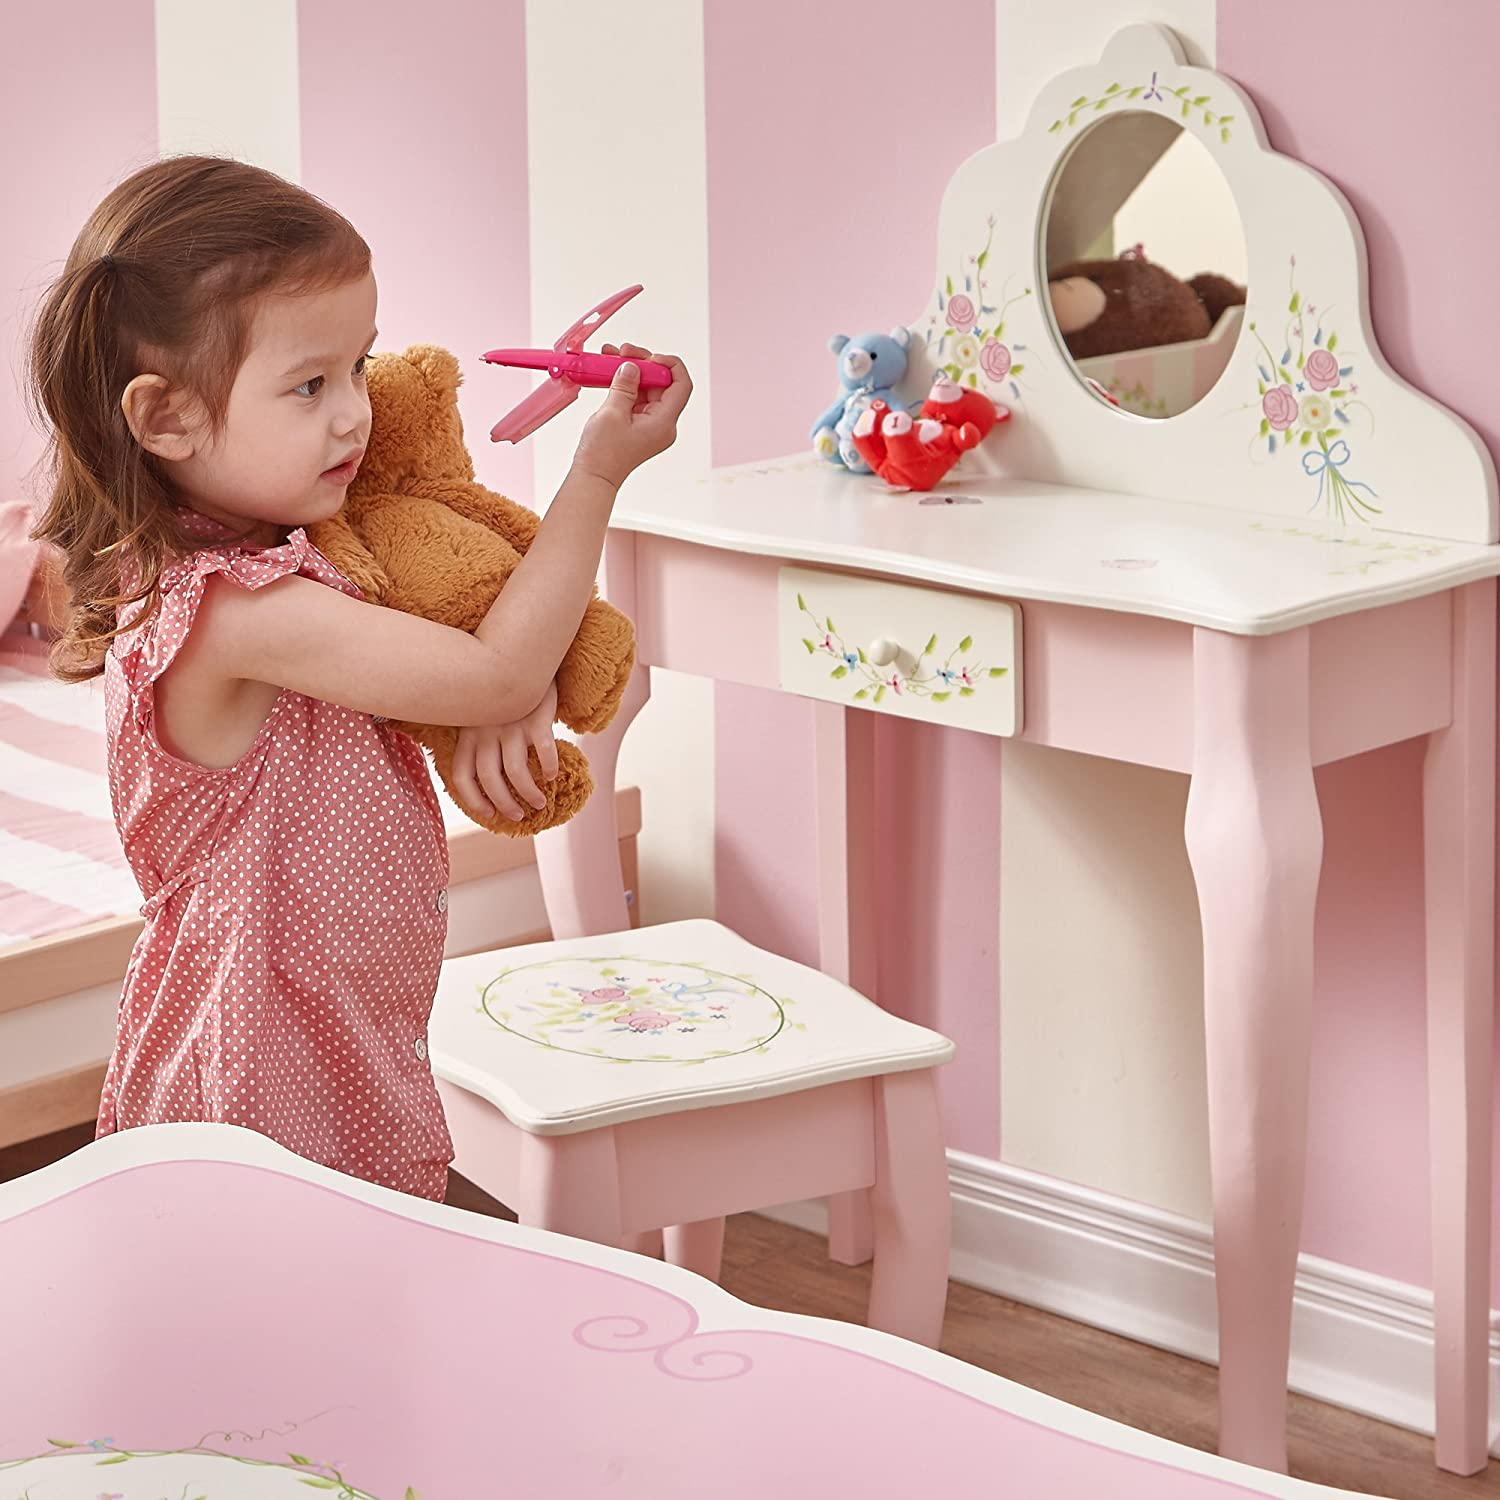 Fantasy Fields Imagination Inspiring Hand Crafted /& Hand Painted Details   Non-Toxic Lead Free Water-based Paint Bouquet Thematic Kids Classic Vanity Table and Stool Set with Mirror